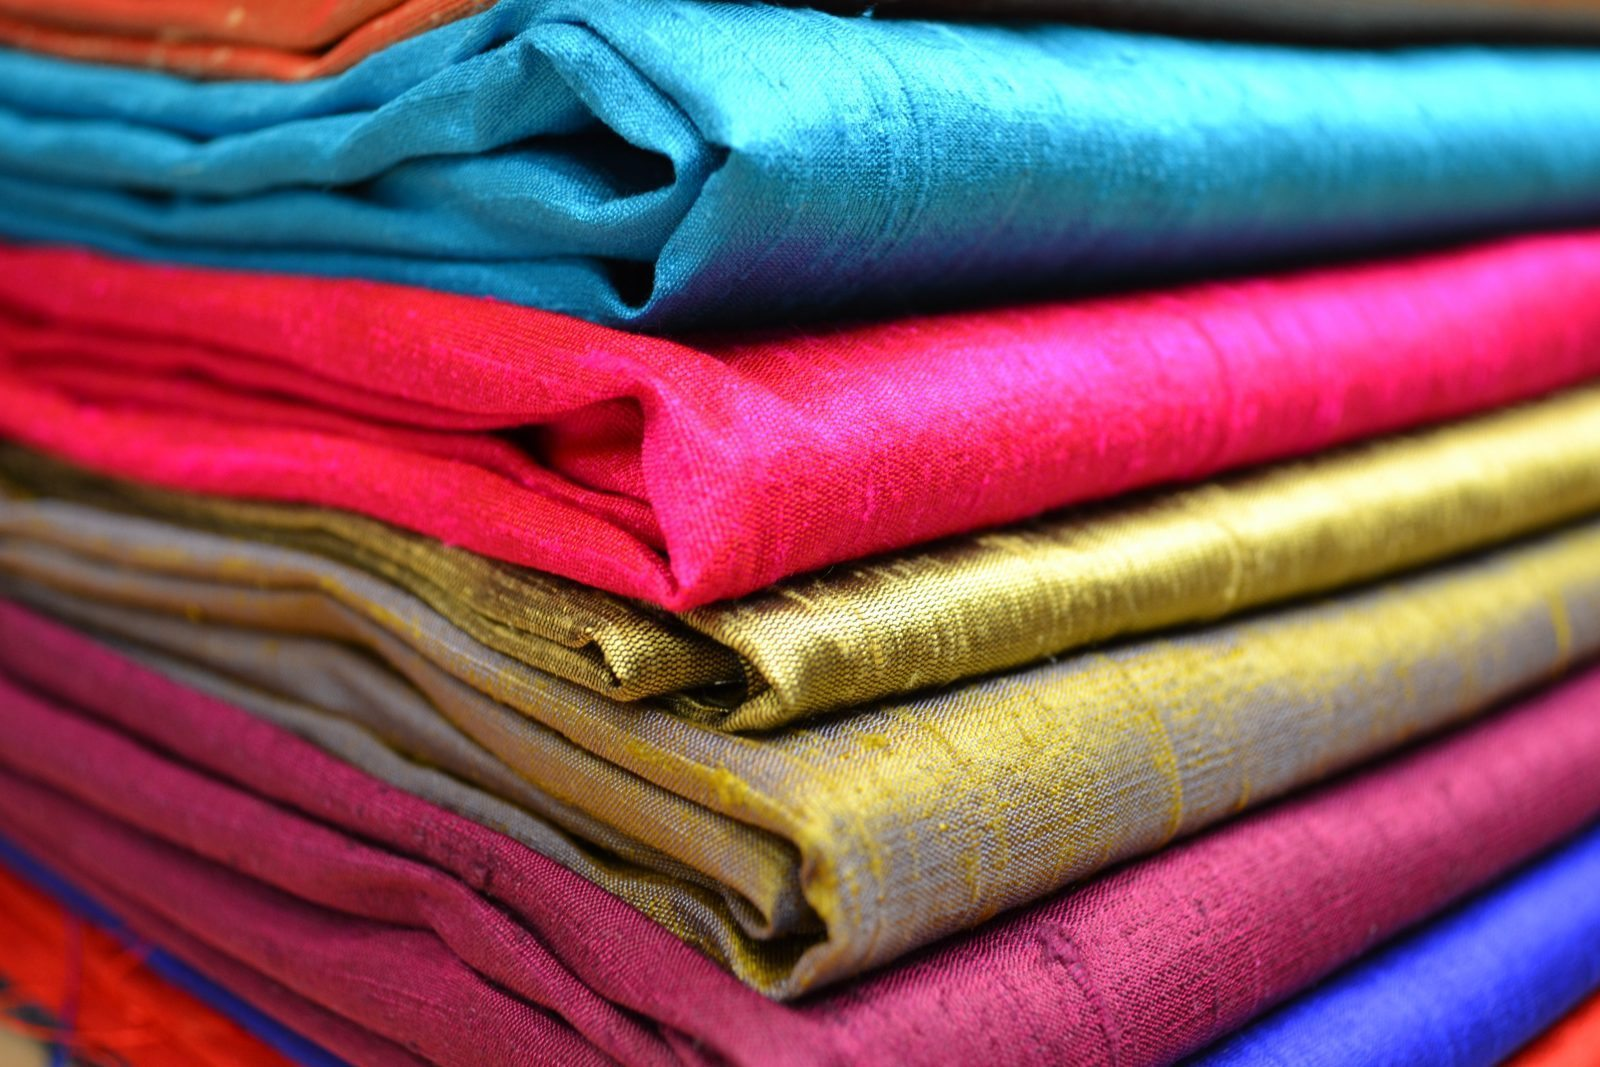 Natural materials for clothing include cotton, leather, wool, fur and fabrics made out of silk or flax. Synthetic materials include polyester, nylon, spandex, acetate and rayon. Cotton, derived from the fiber of a cotton plant, is one of the most common materials for clothing.